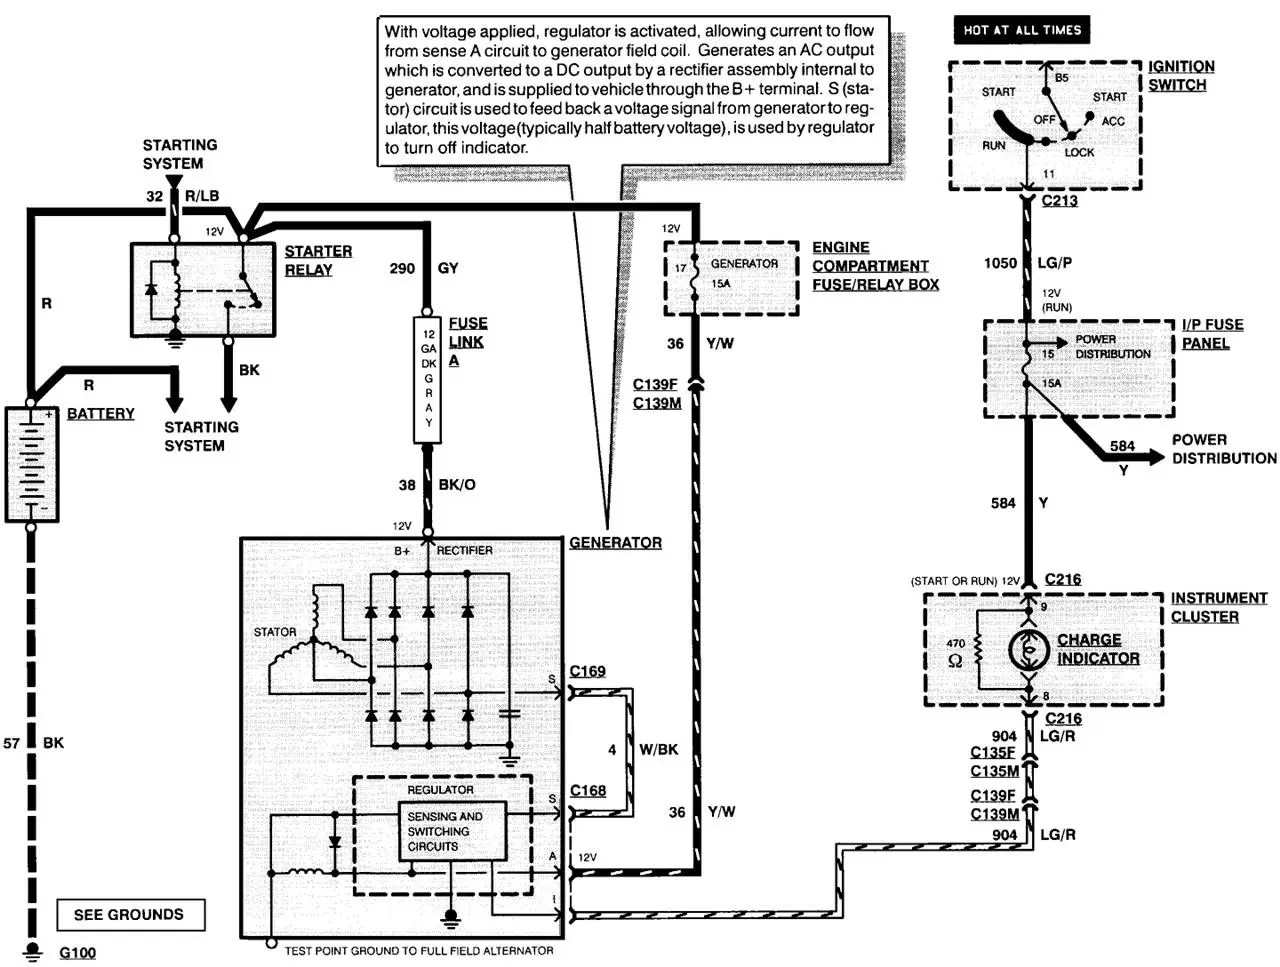 hight resolution of tornado electrical diagram alternator wiring diagram alternator electrical diagram wiring diagram dewiring diagram of alternator to